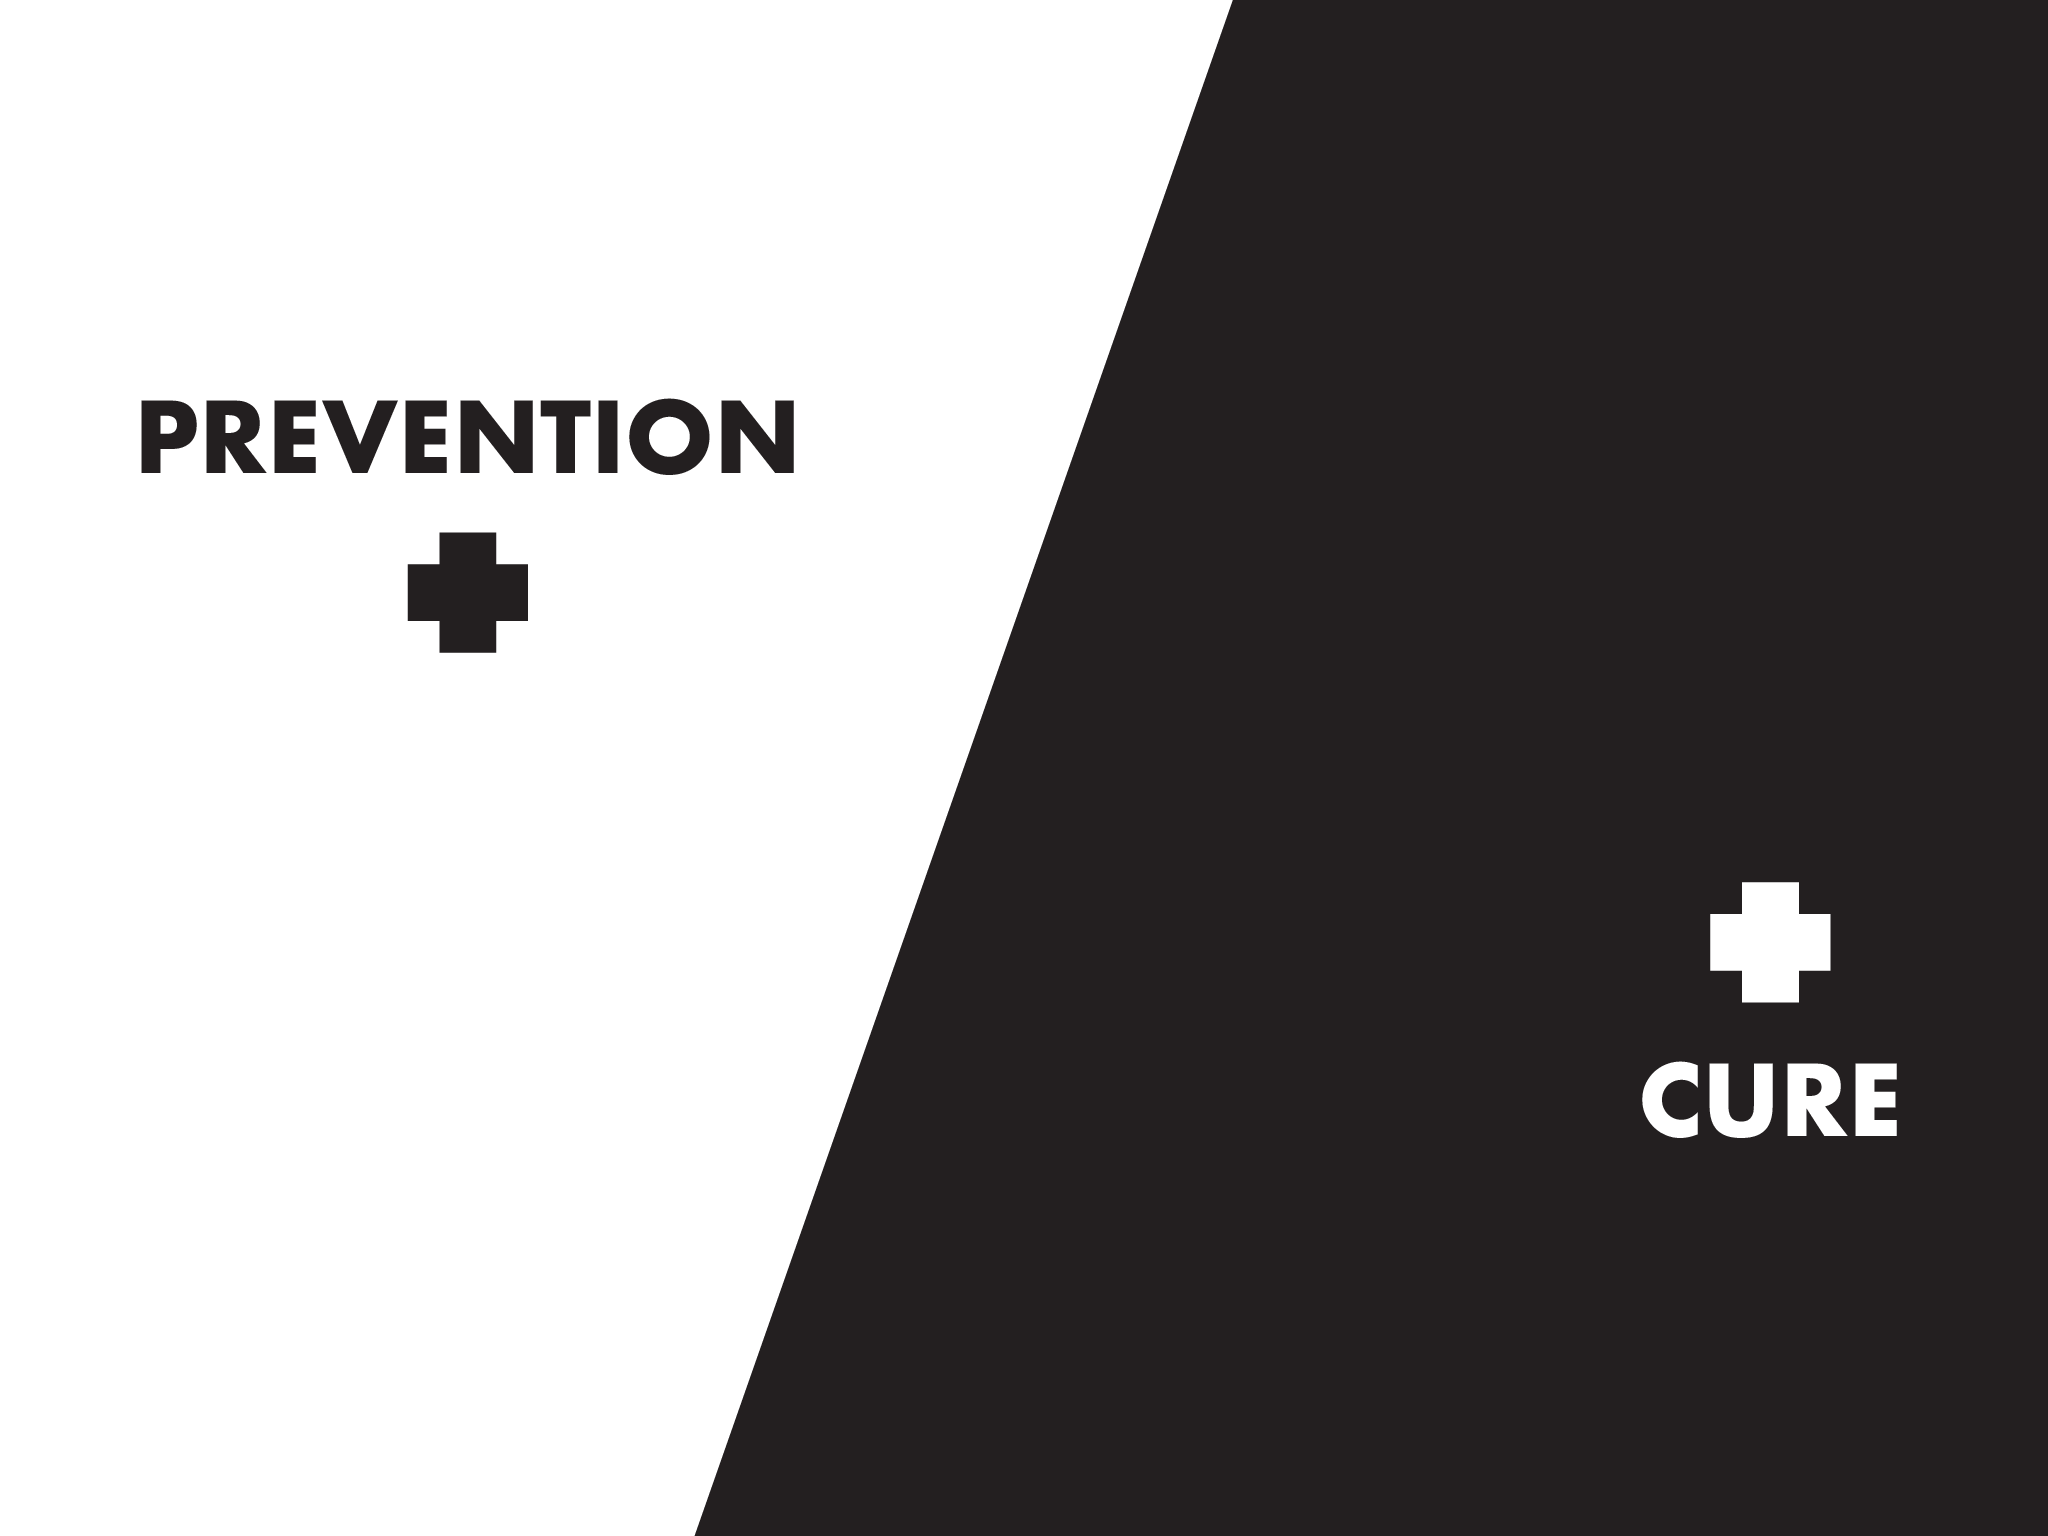 Prevention and Cure Graphic